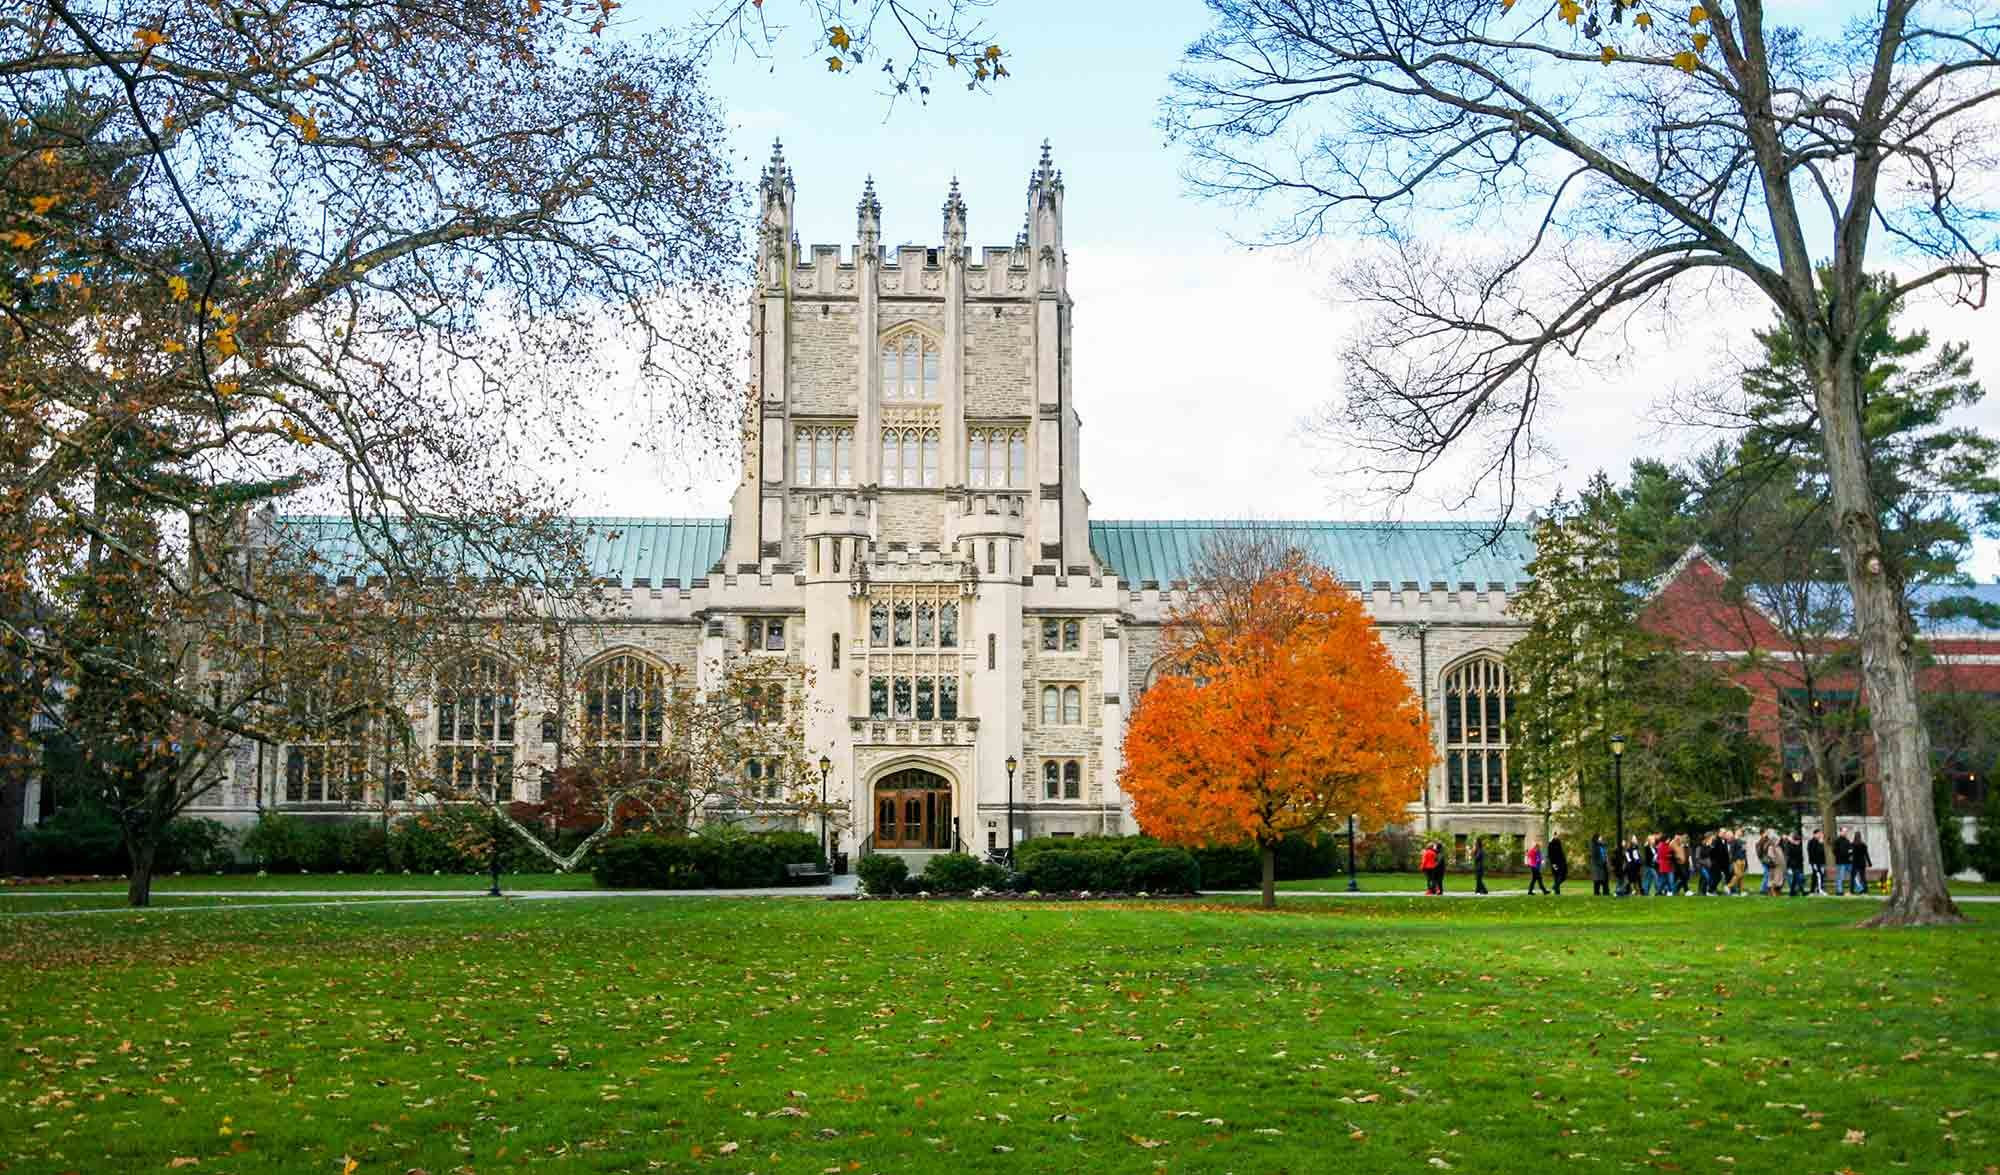 Vassar College Campus Poughkeepsie Ny College Campus Places In America Hudson River Valley